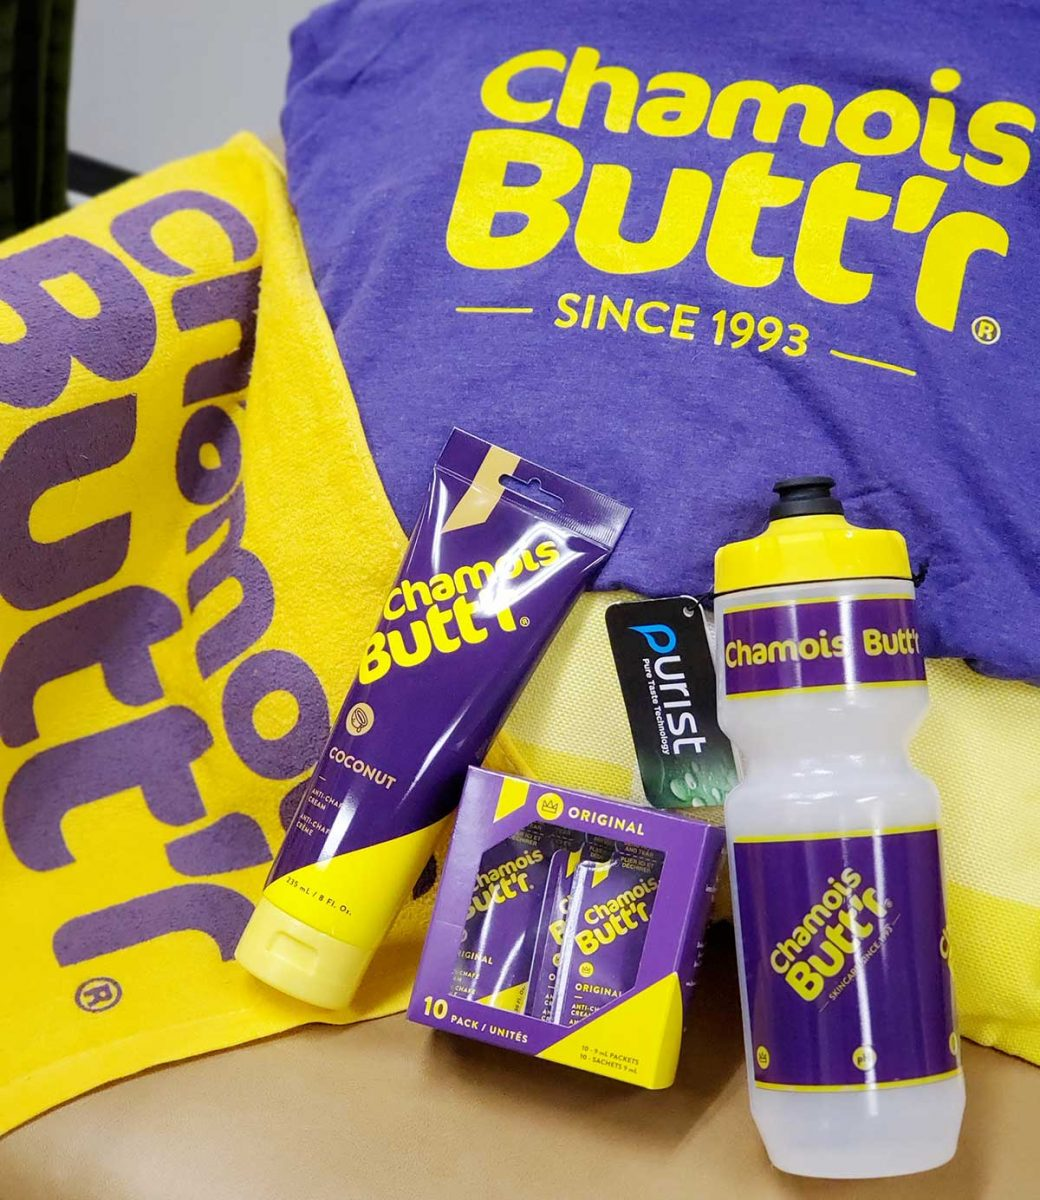 Win a Care Package from Chamois Butt'r